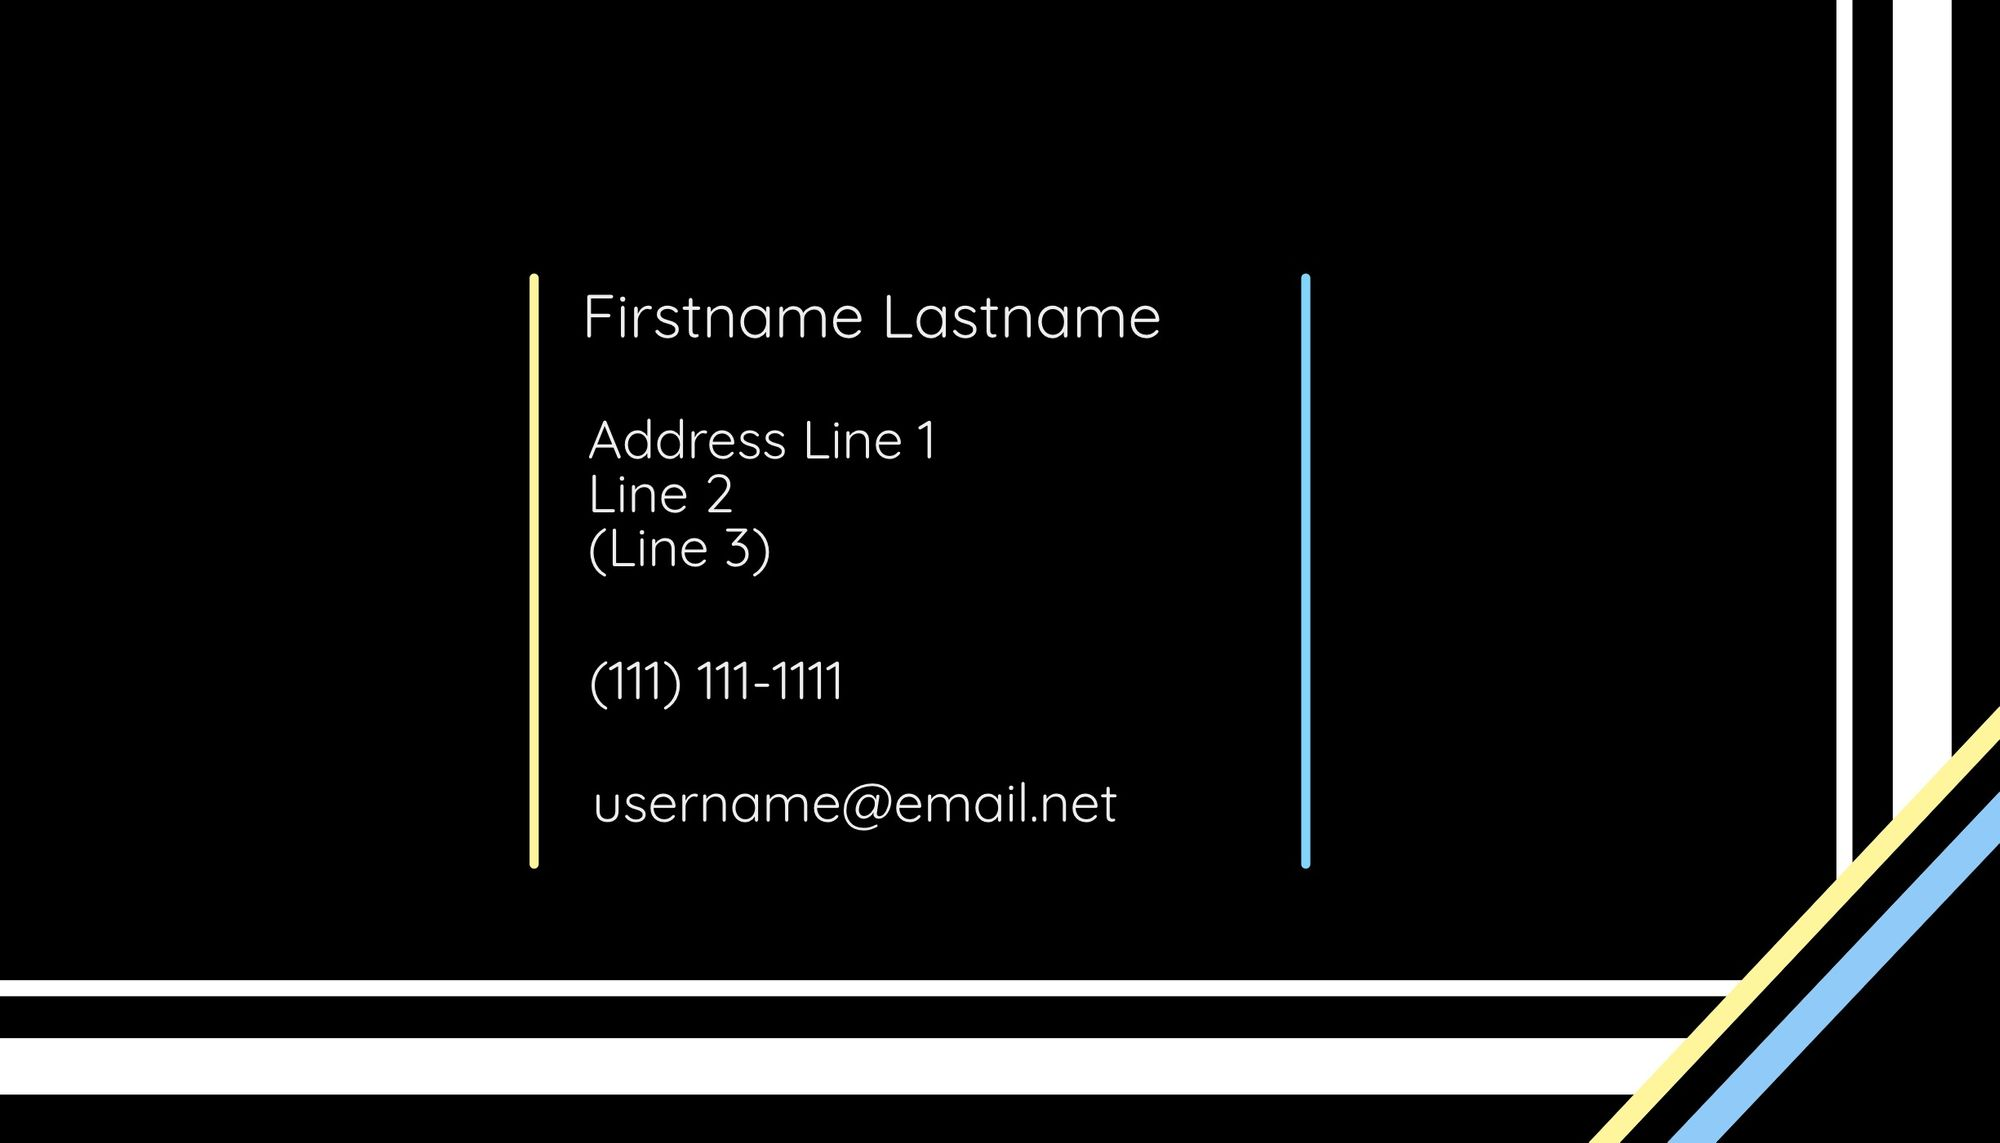 The reverse side of the first business card template.